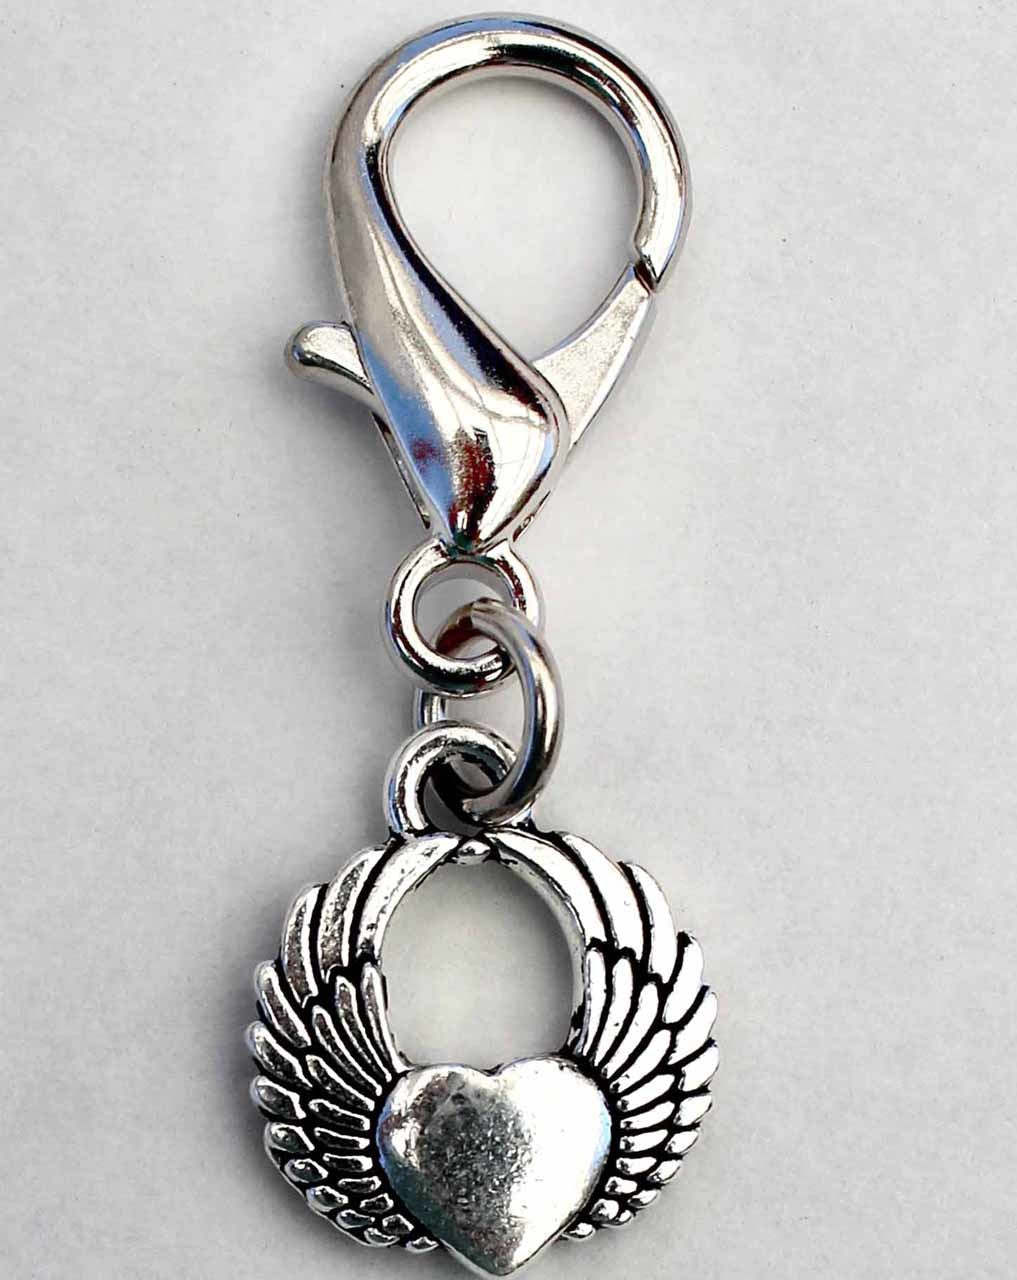 Winged Heart Collar Pet Charm